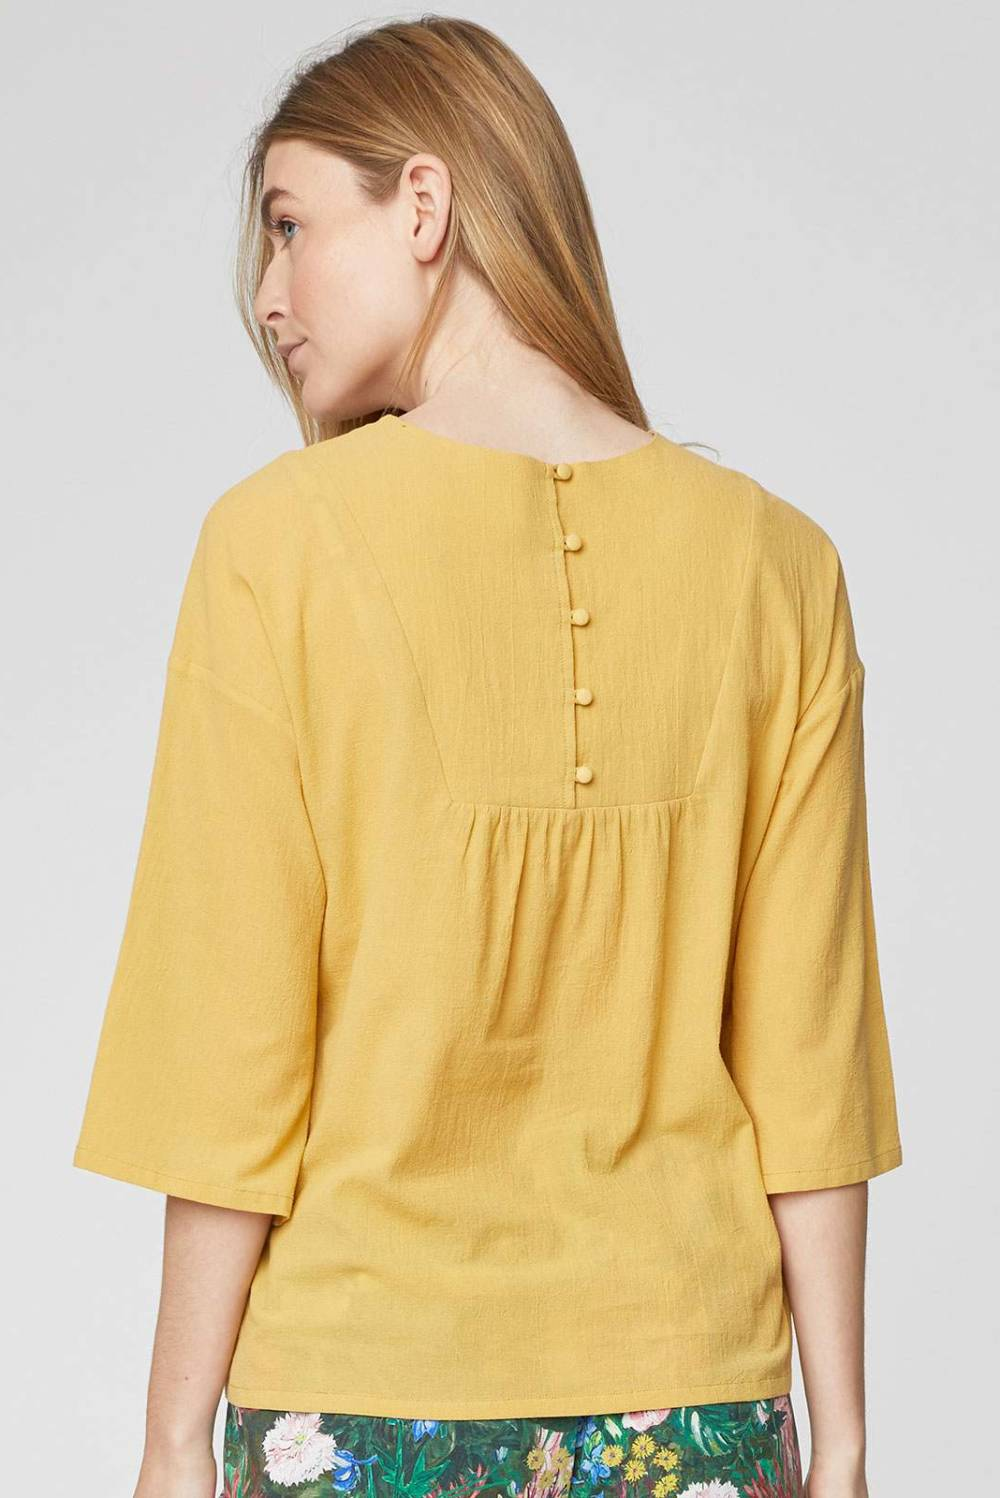 WST4194 Georgette Top Thought Clothing Katie Kerr Women's Clothing